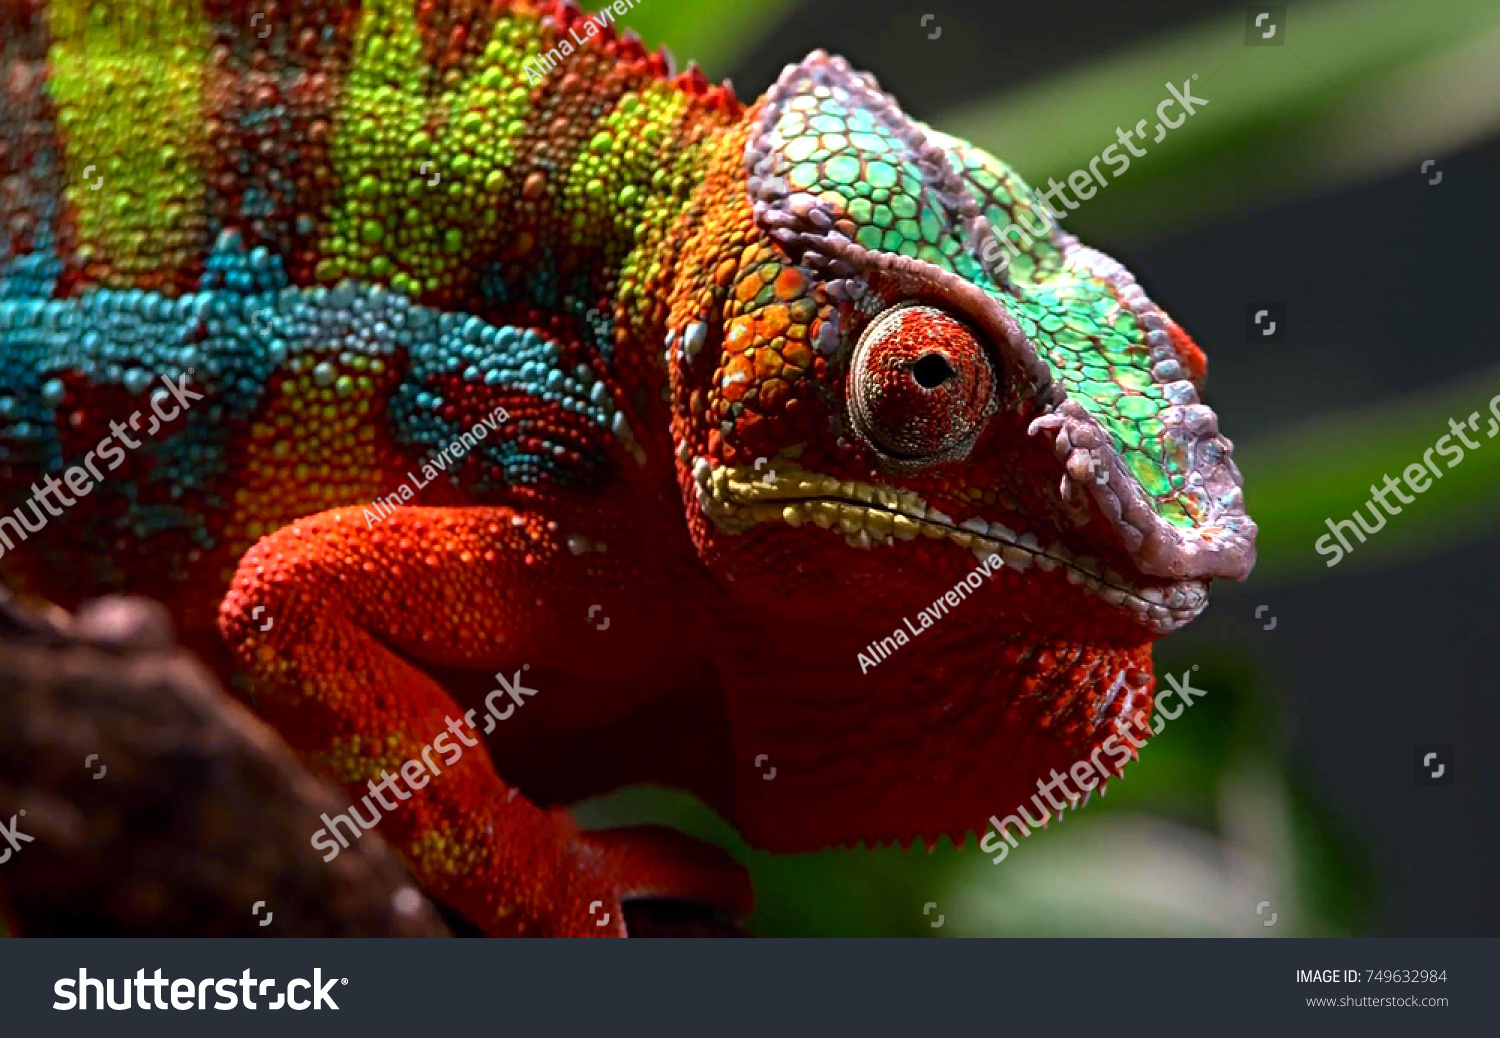 Close up animal portrait photo of chameleon lizard changing color of skin #749632984